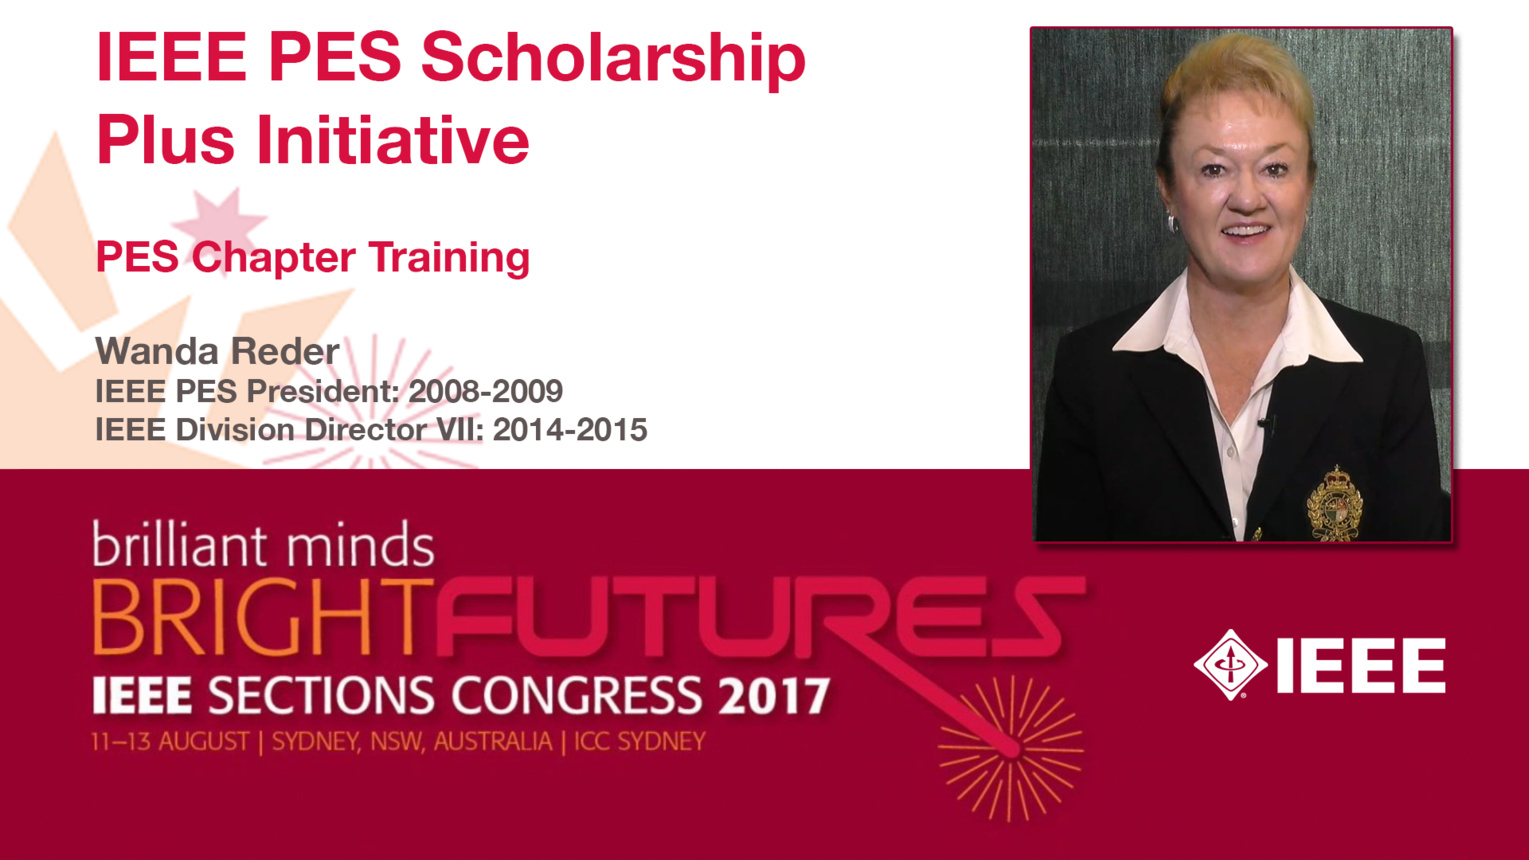 Wanda Reder: IEEE PES Scholarship Plus Initiative — Studio Tech Talks: Sections Congress 2017